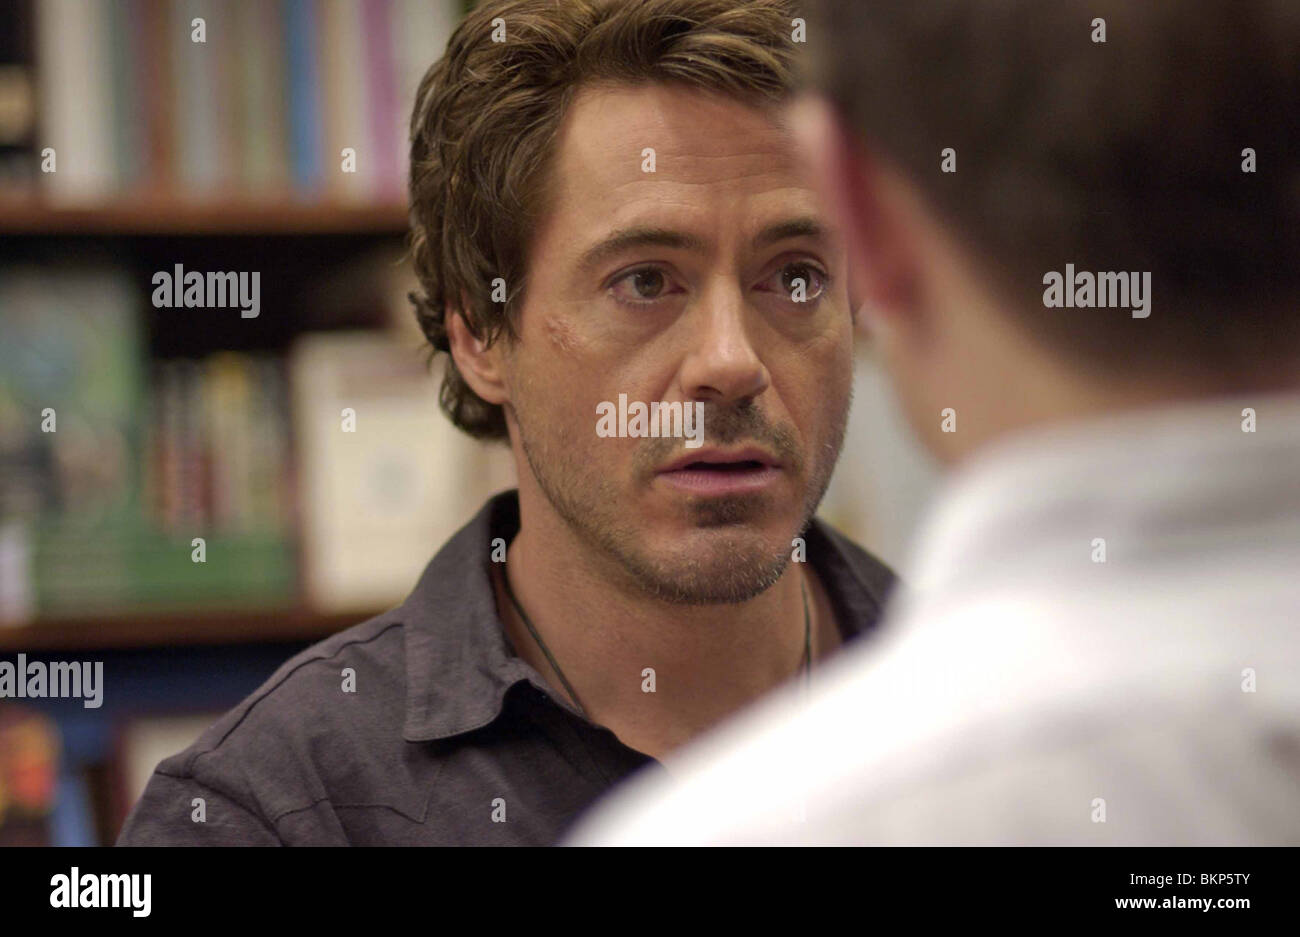 A GUIDE TO RECOGNIZING YOUR SAINTS (2006) ROBERT DOWNEY JR AGTR 001-02 - Stock Image